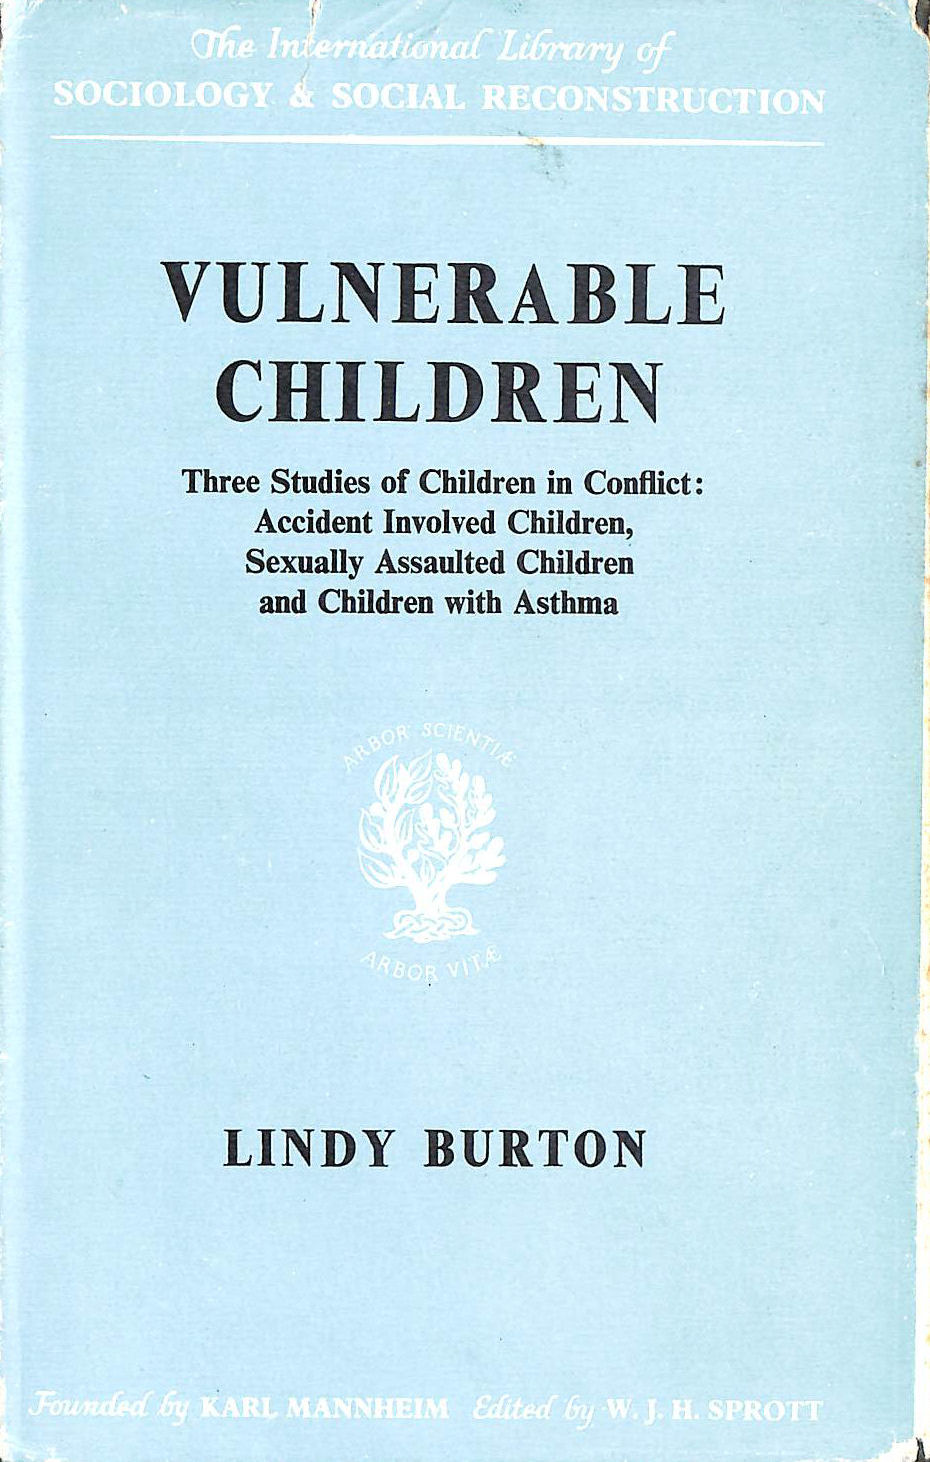 Image for Vulnerable Children: Three Studies of Children in Conflict: Accident Involved Children, Sexually Assaulted Children and Children with Asthma